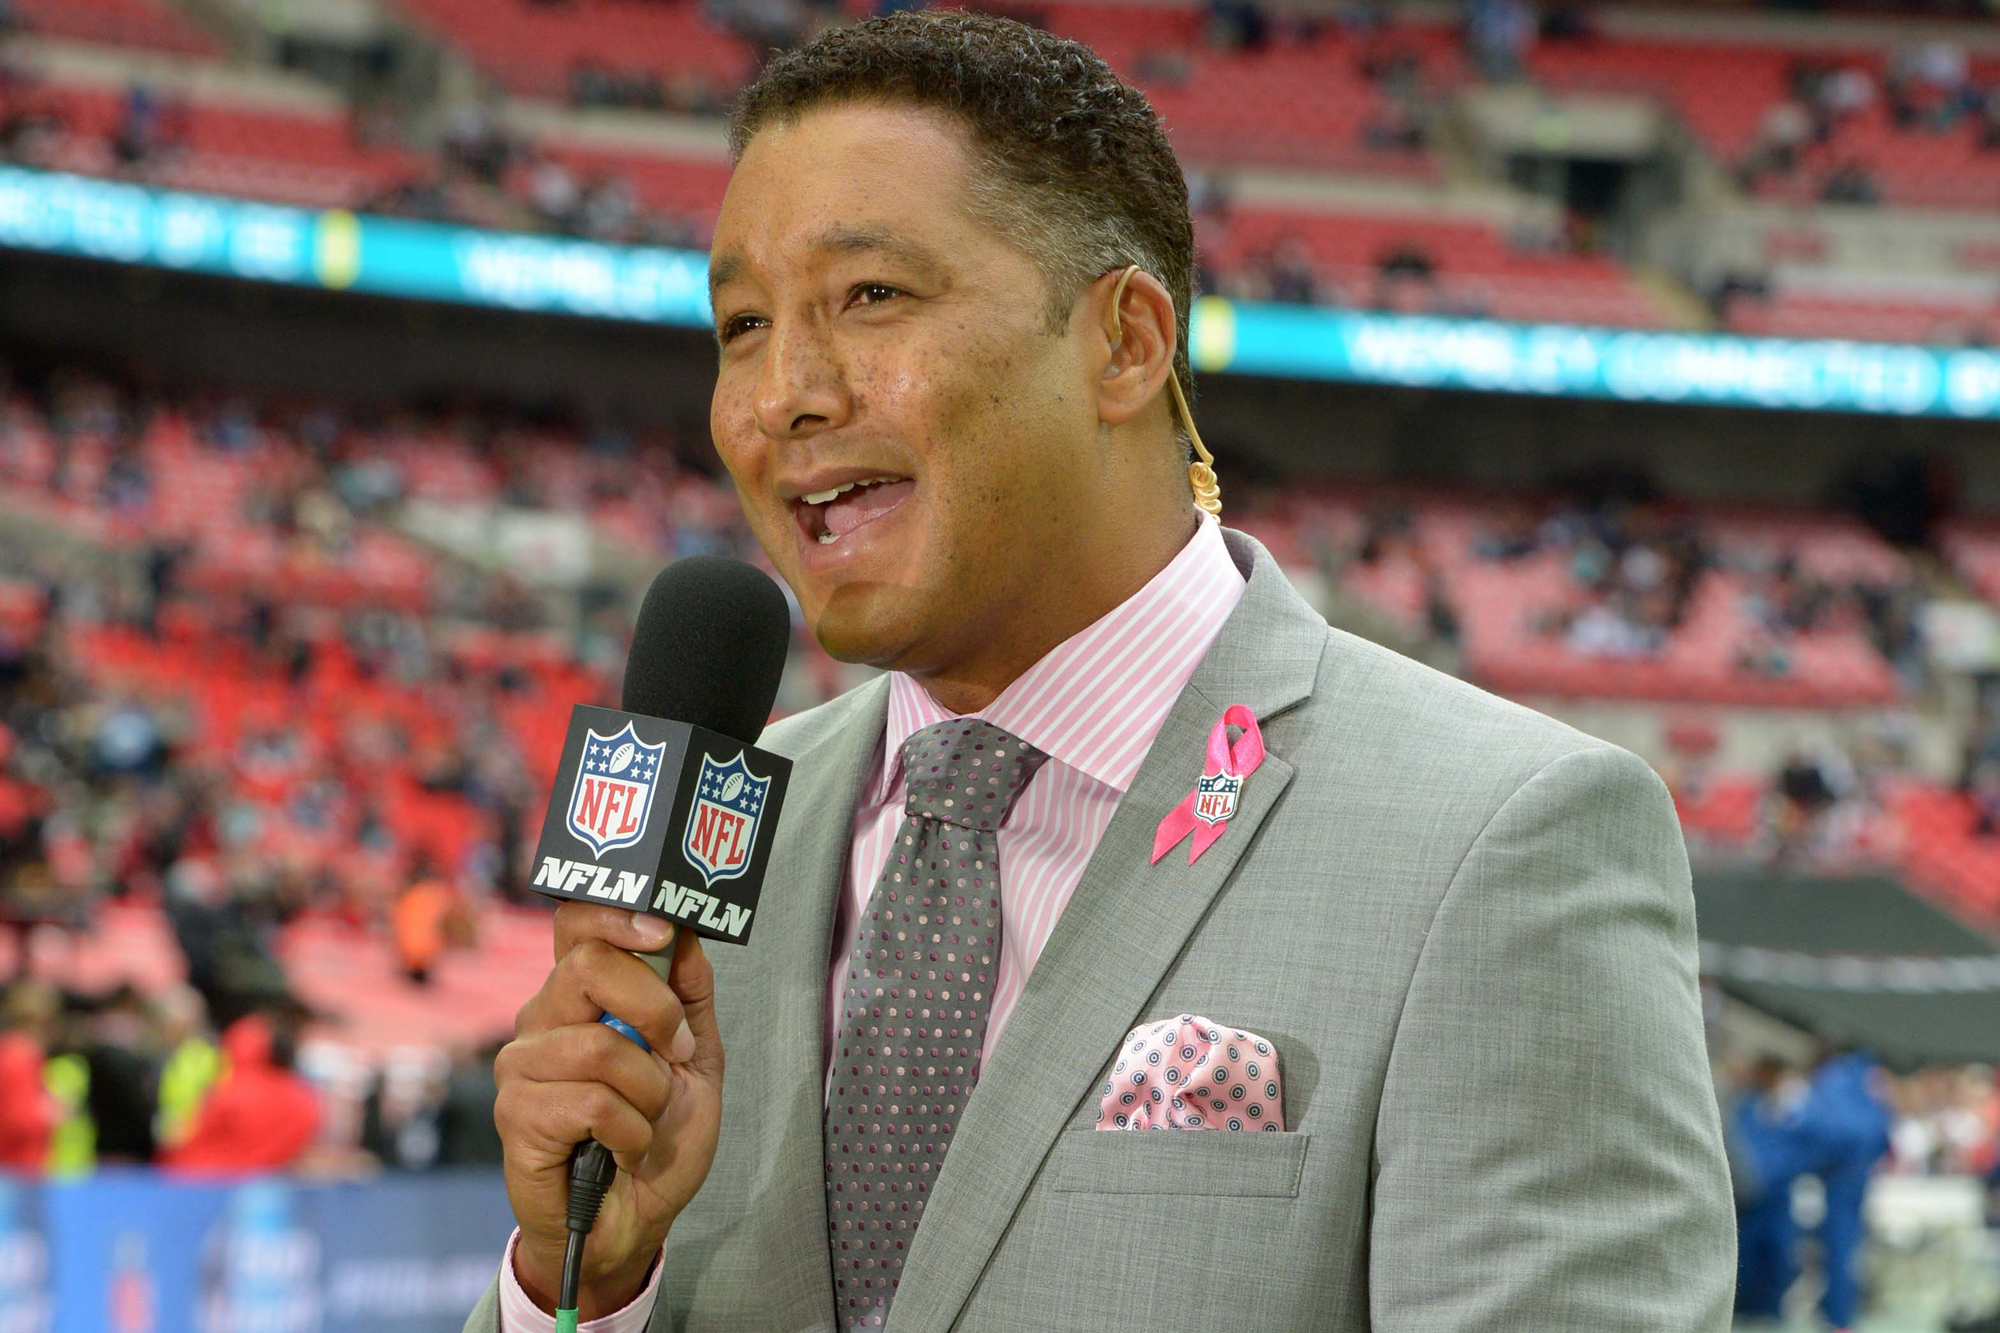 NFL Network reporter Steve Wyche during the NFL International Series game between the Detroit Lions and Atlanta Falcons at Wembley Stadium.